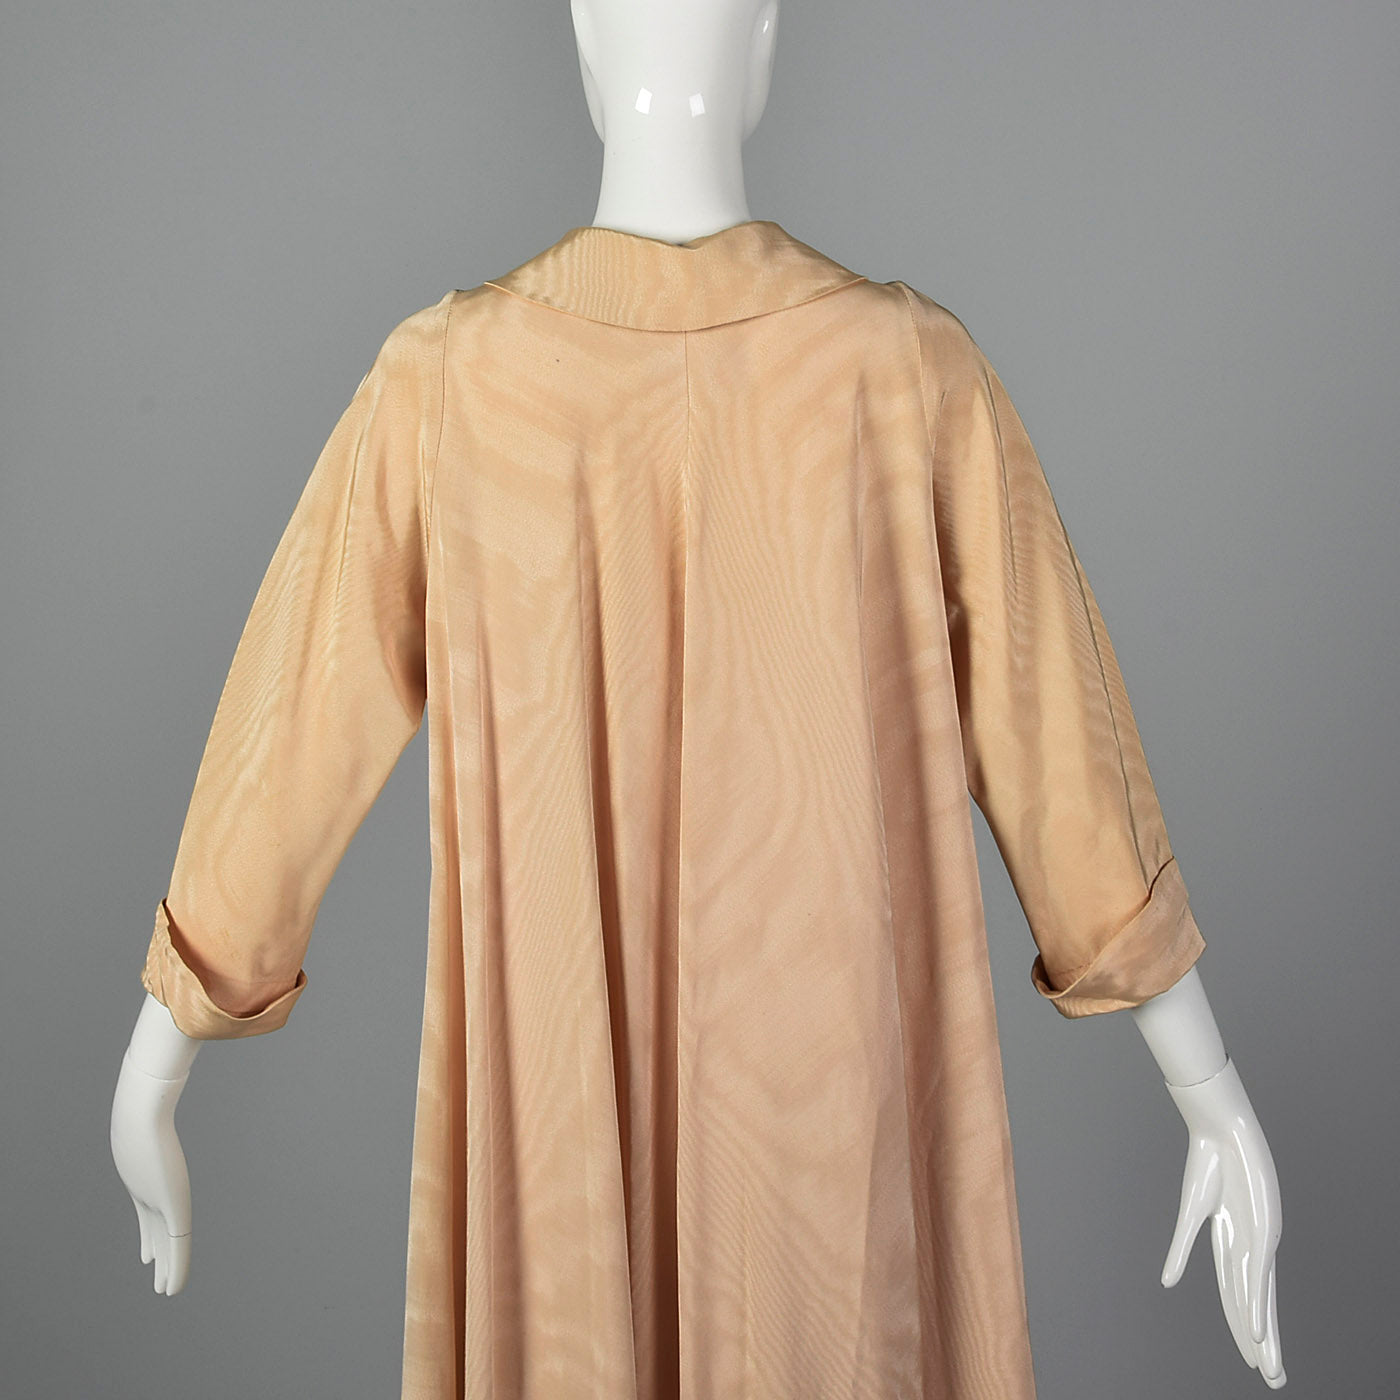 1960s Saks Fifth Avenue Elegant Evening Coat